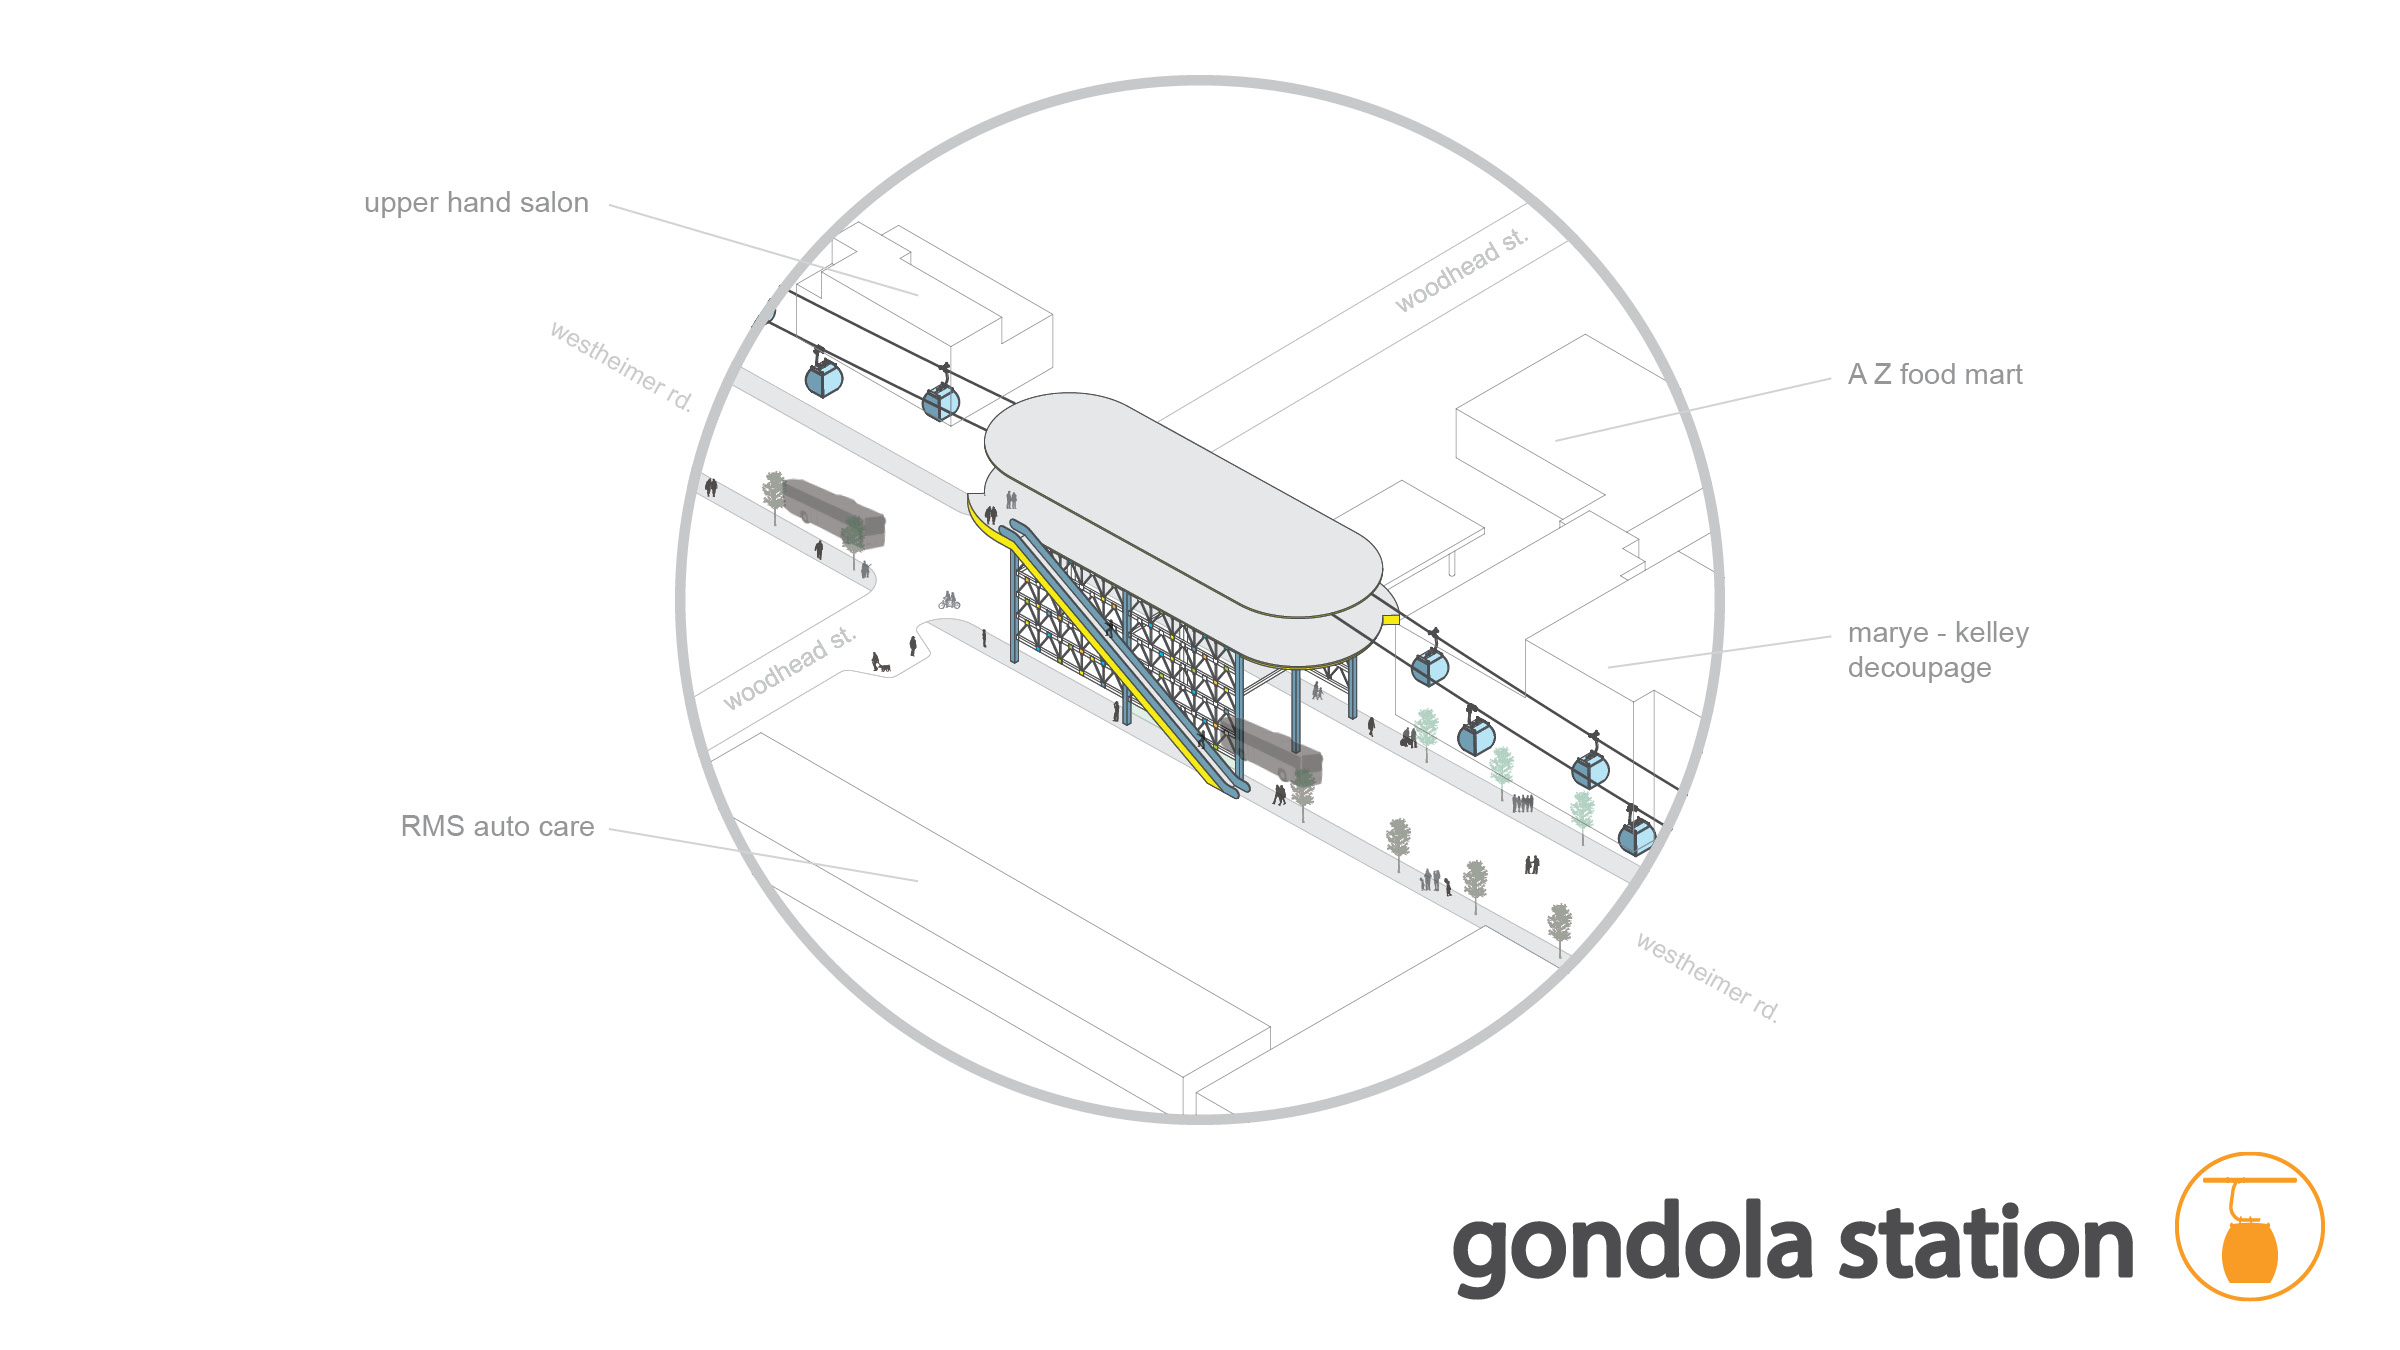 similar to the automated parking garages, these gondola stations will be fully automated, supervised by minimal staff / maintenance, they straddle the road allowing for pedestrian and public transit to move through the under the structure